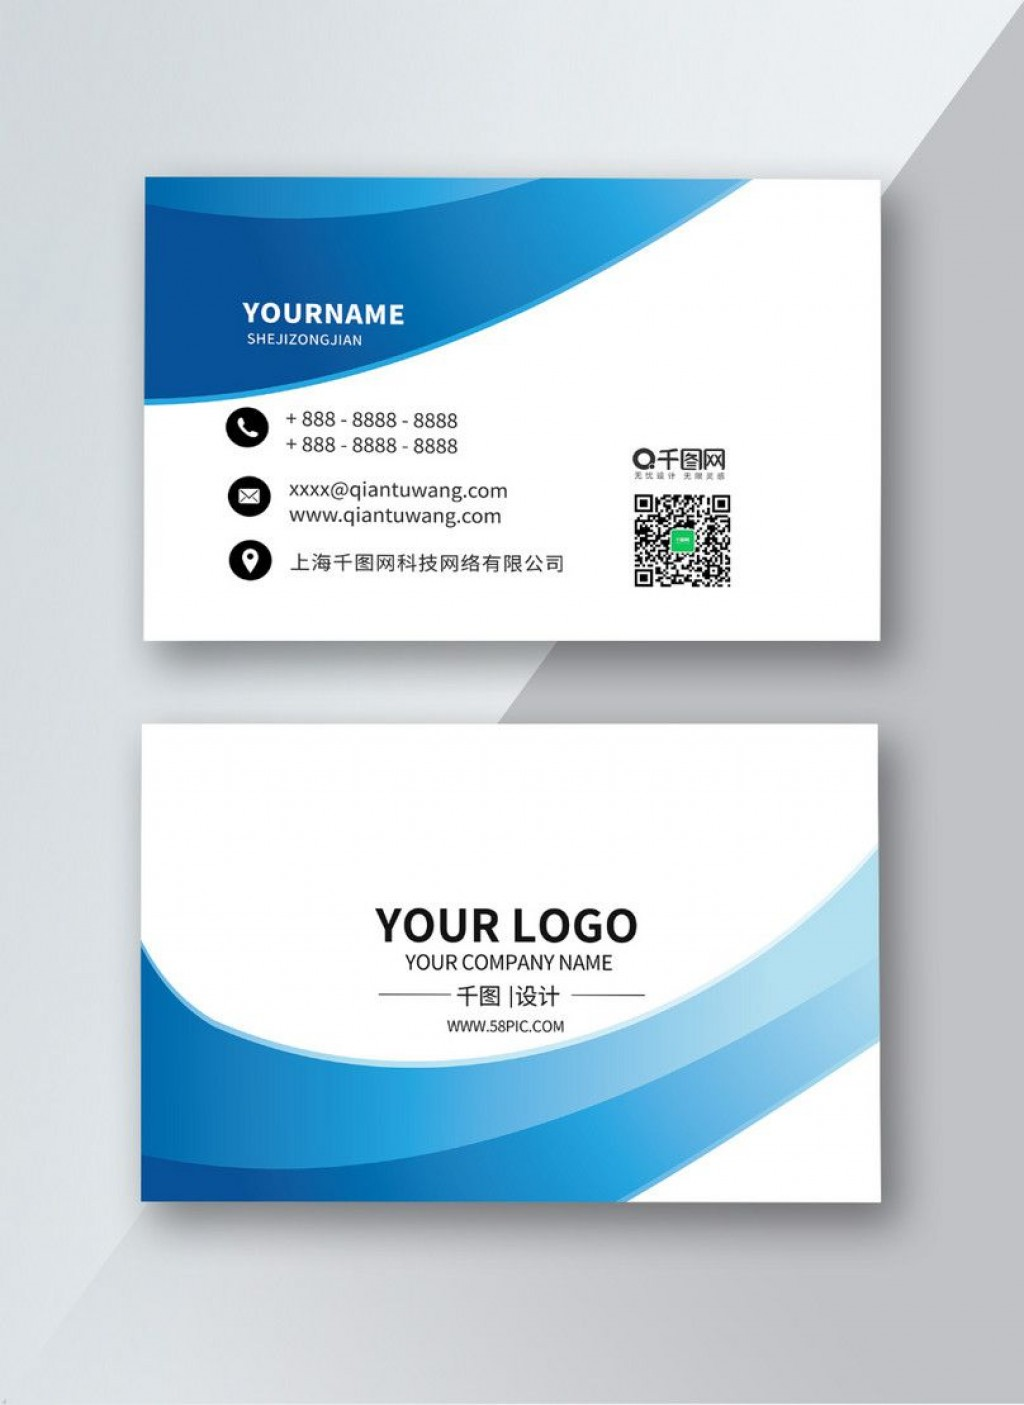 003 Sensational Free Download Busines Card Template High Resolution  Microsoft Word Photoshop Psd Double SidedLarge